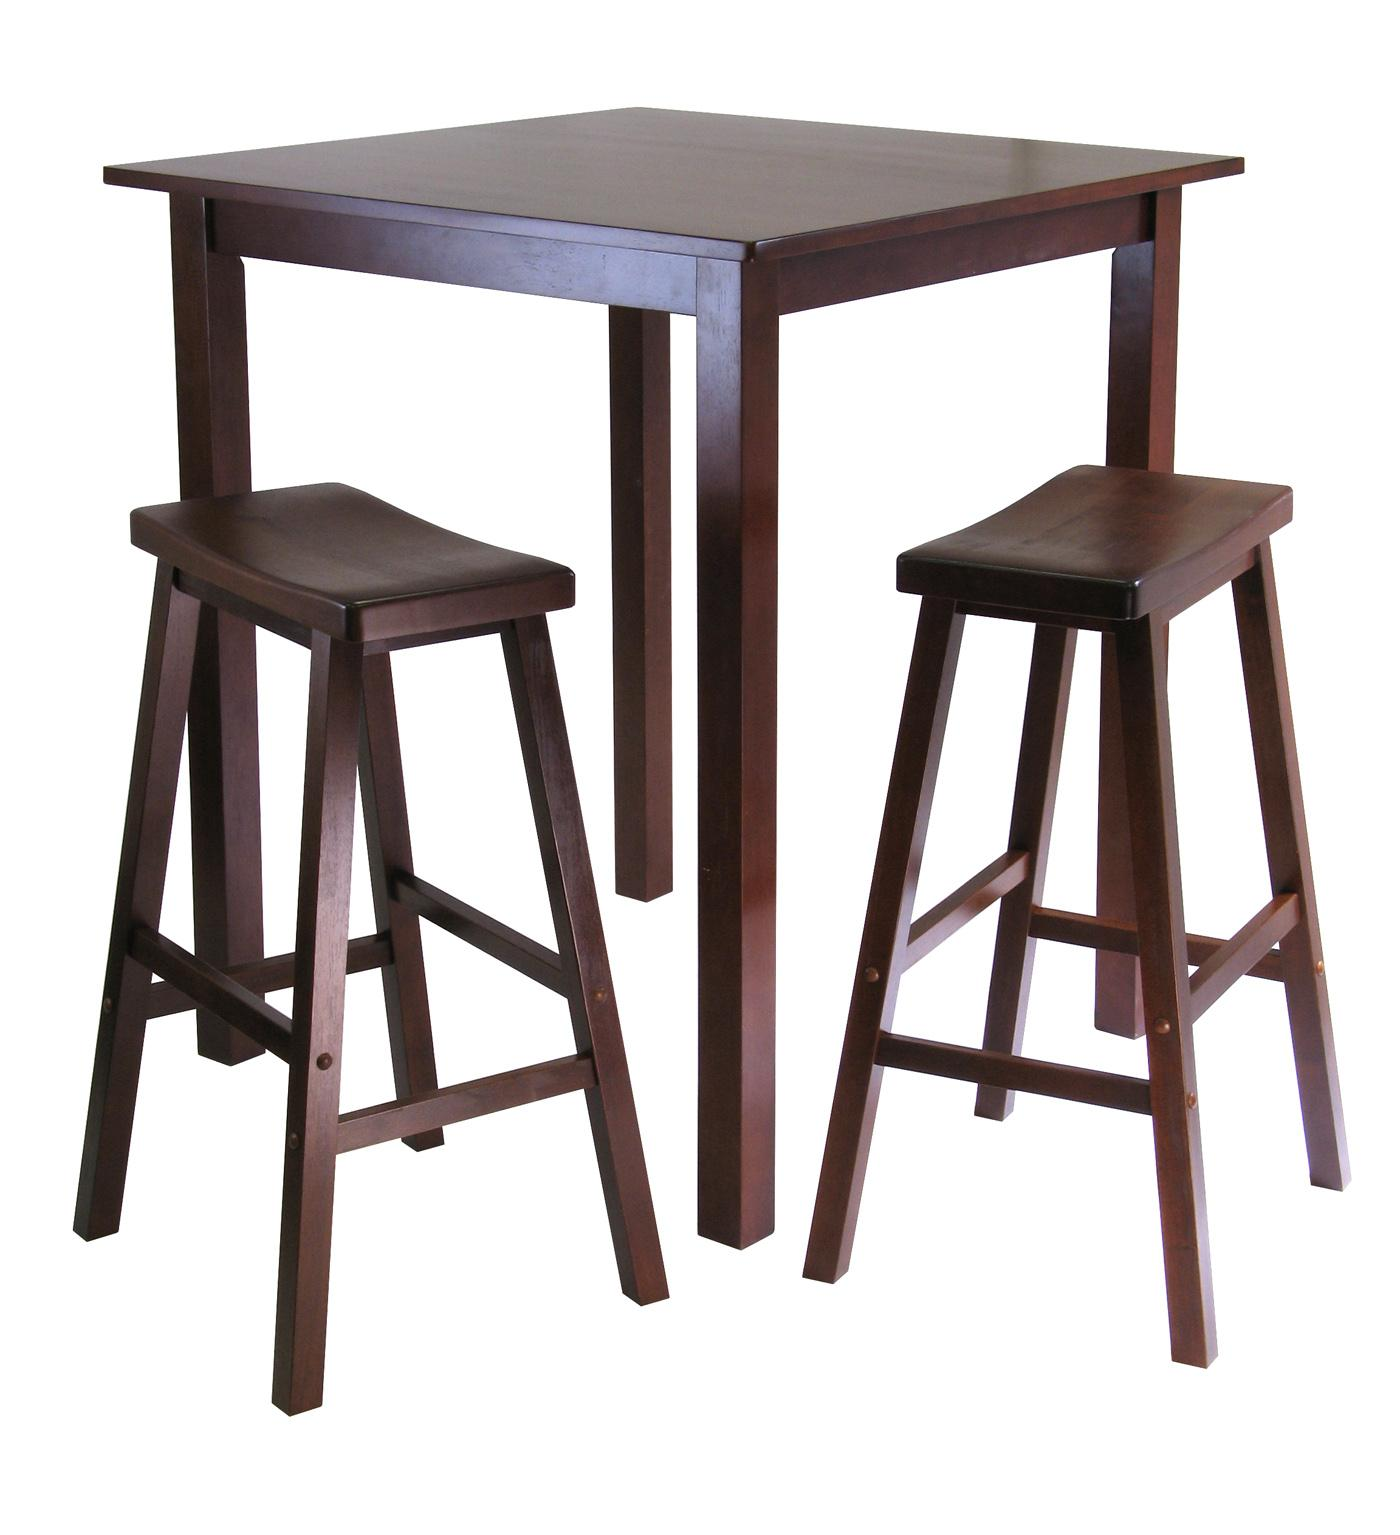 Winsome Parkland 3pc Square HighPub Table Set With 2